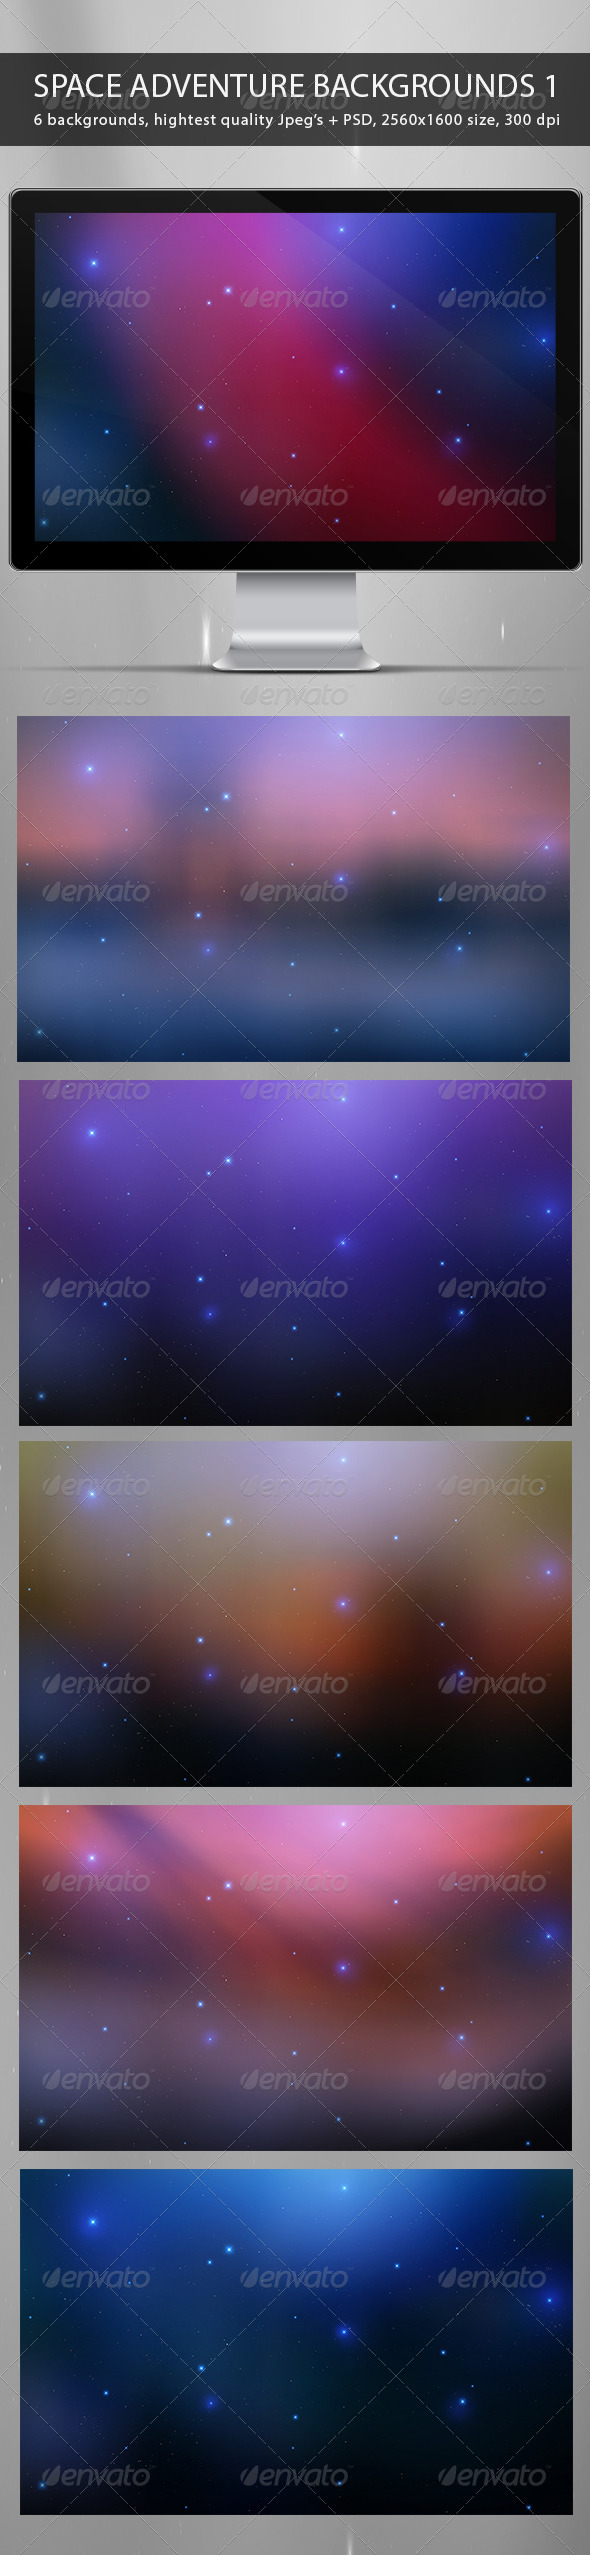 Space Adventure Backgrounds Part 1 - Abstract Backgrounds